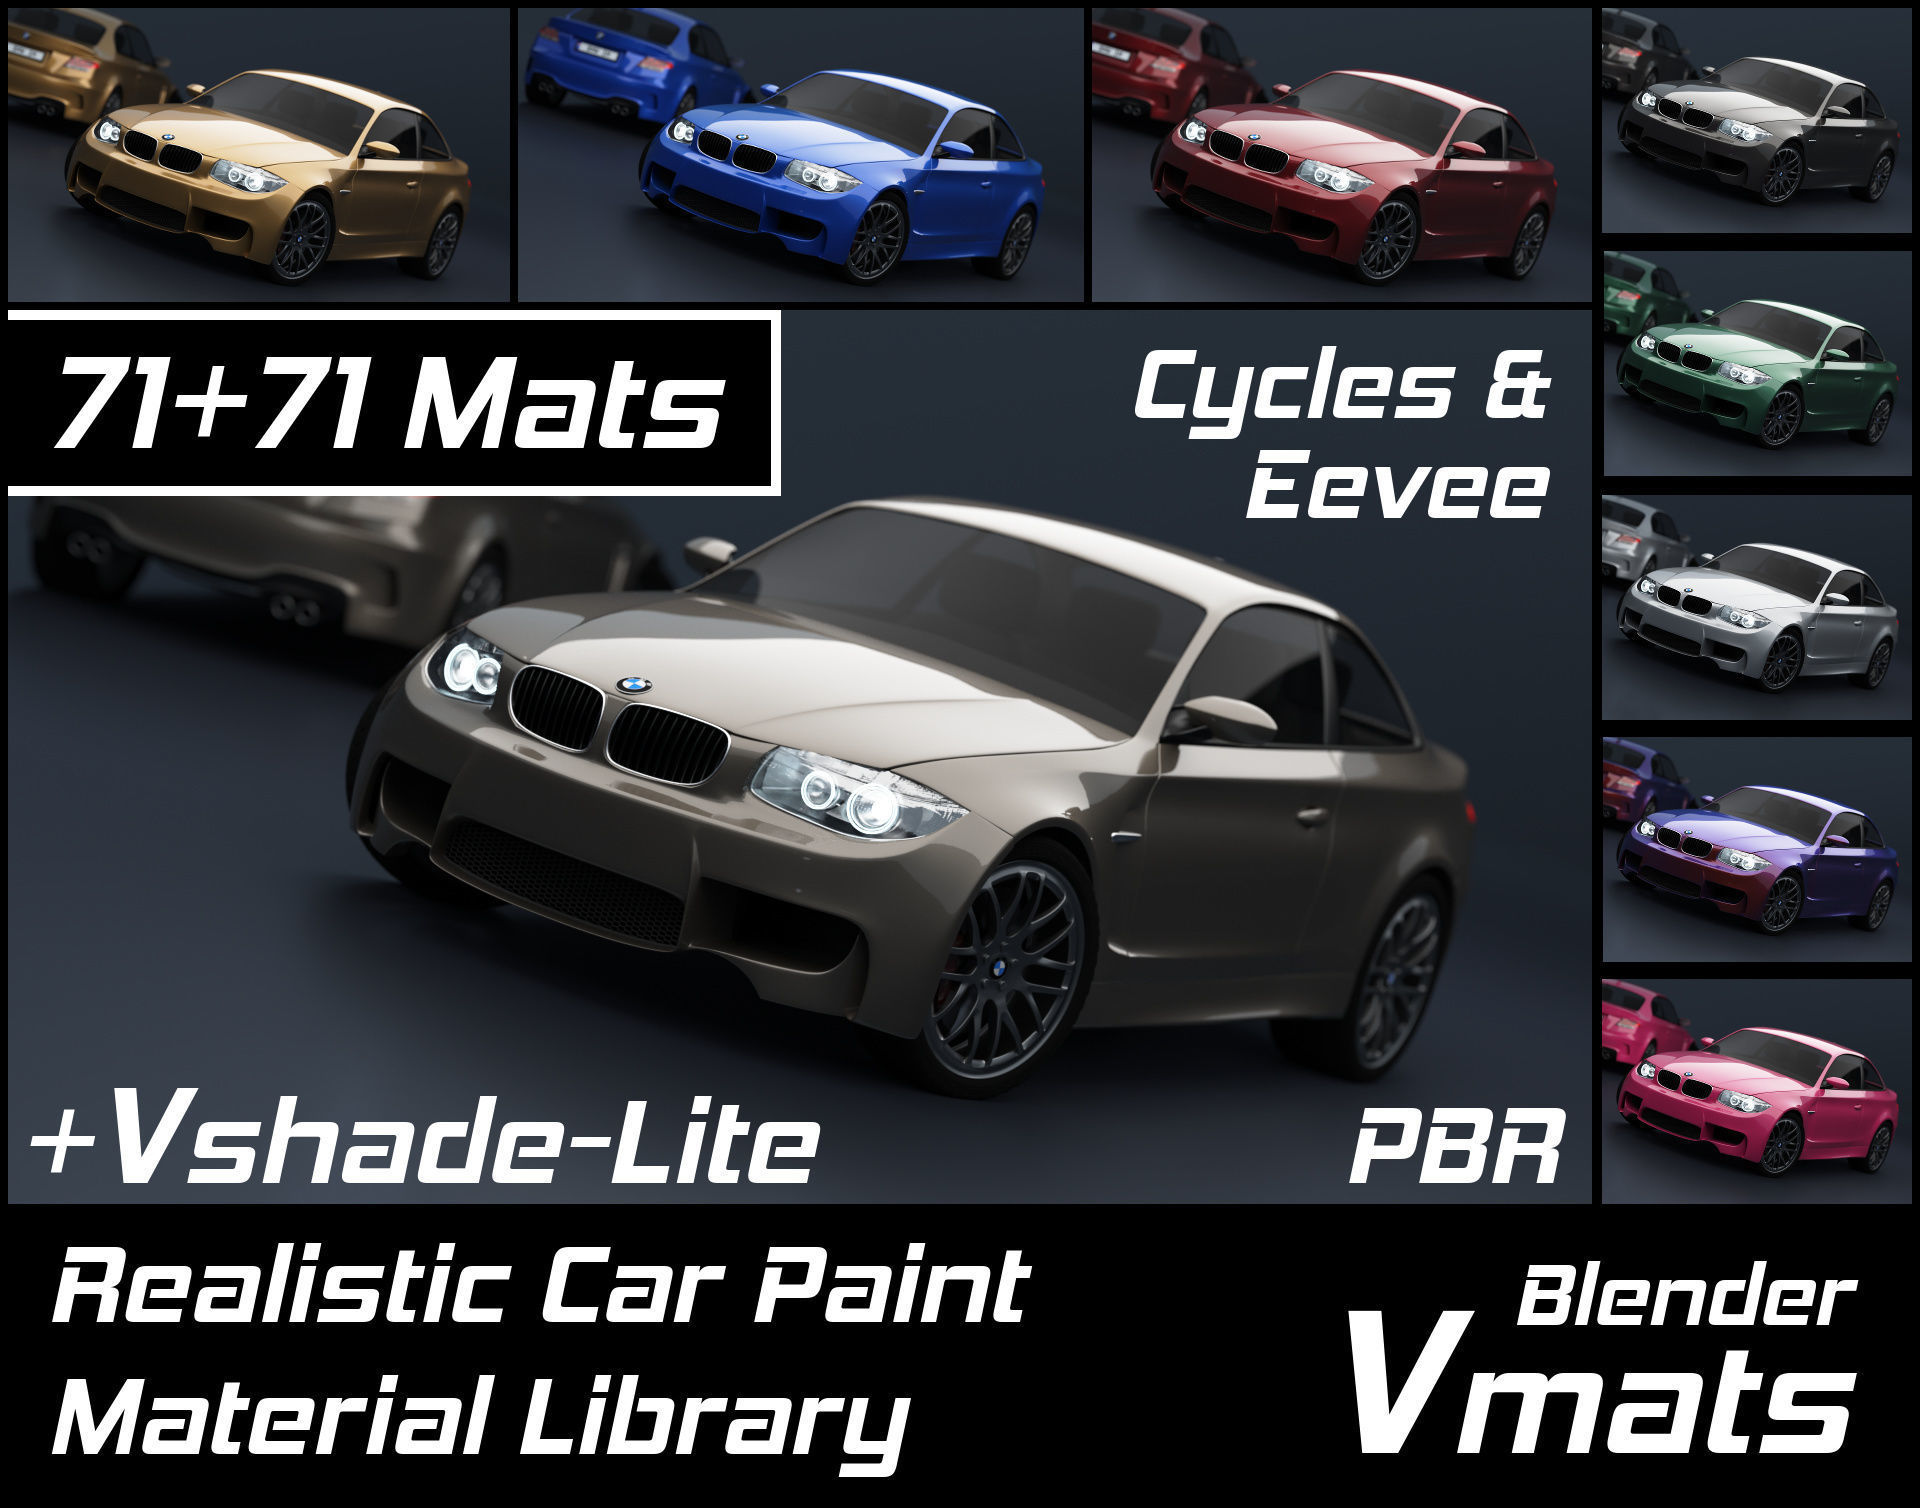 VMATS Car Paint Material Library for Blender Cycles and Eevee